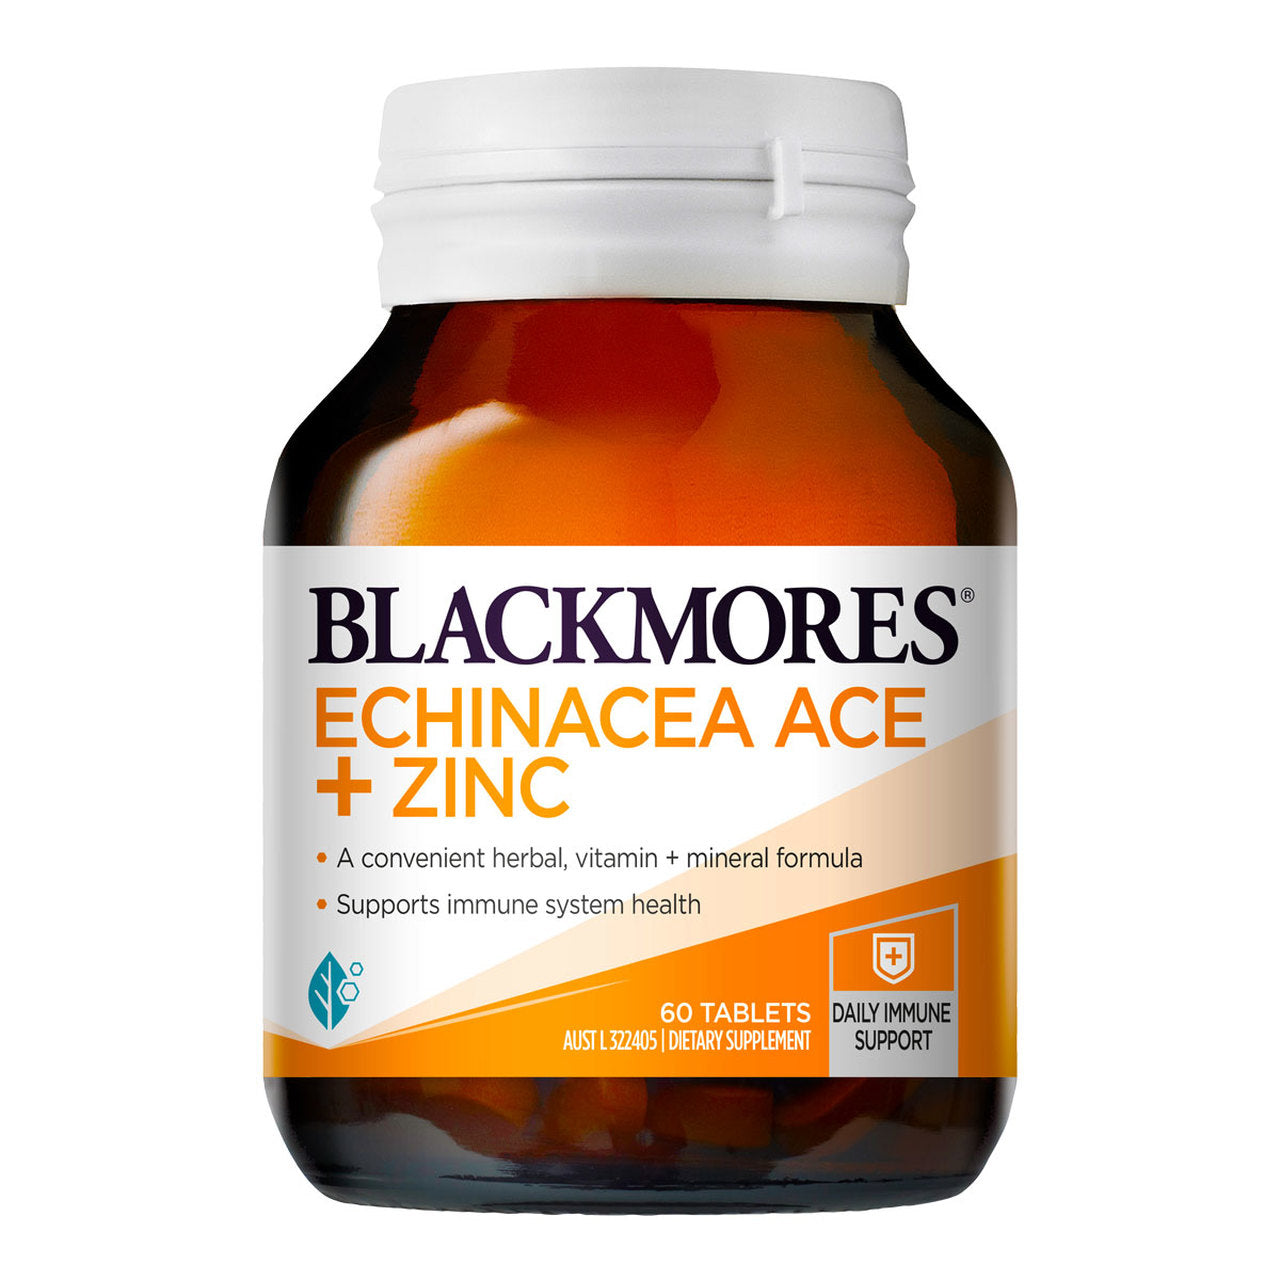 Blackmores Echinacea ACE + Zinc 60 Tablets